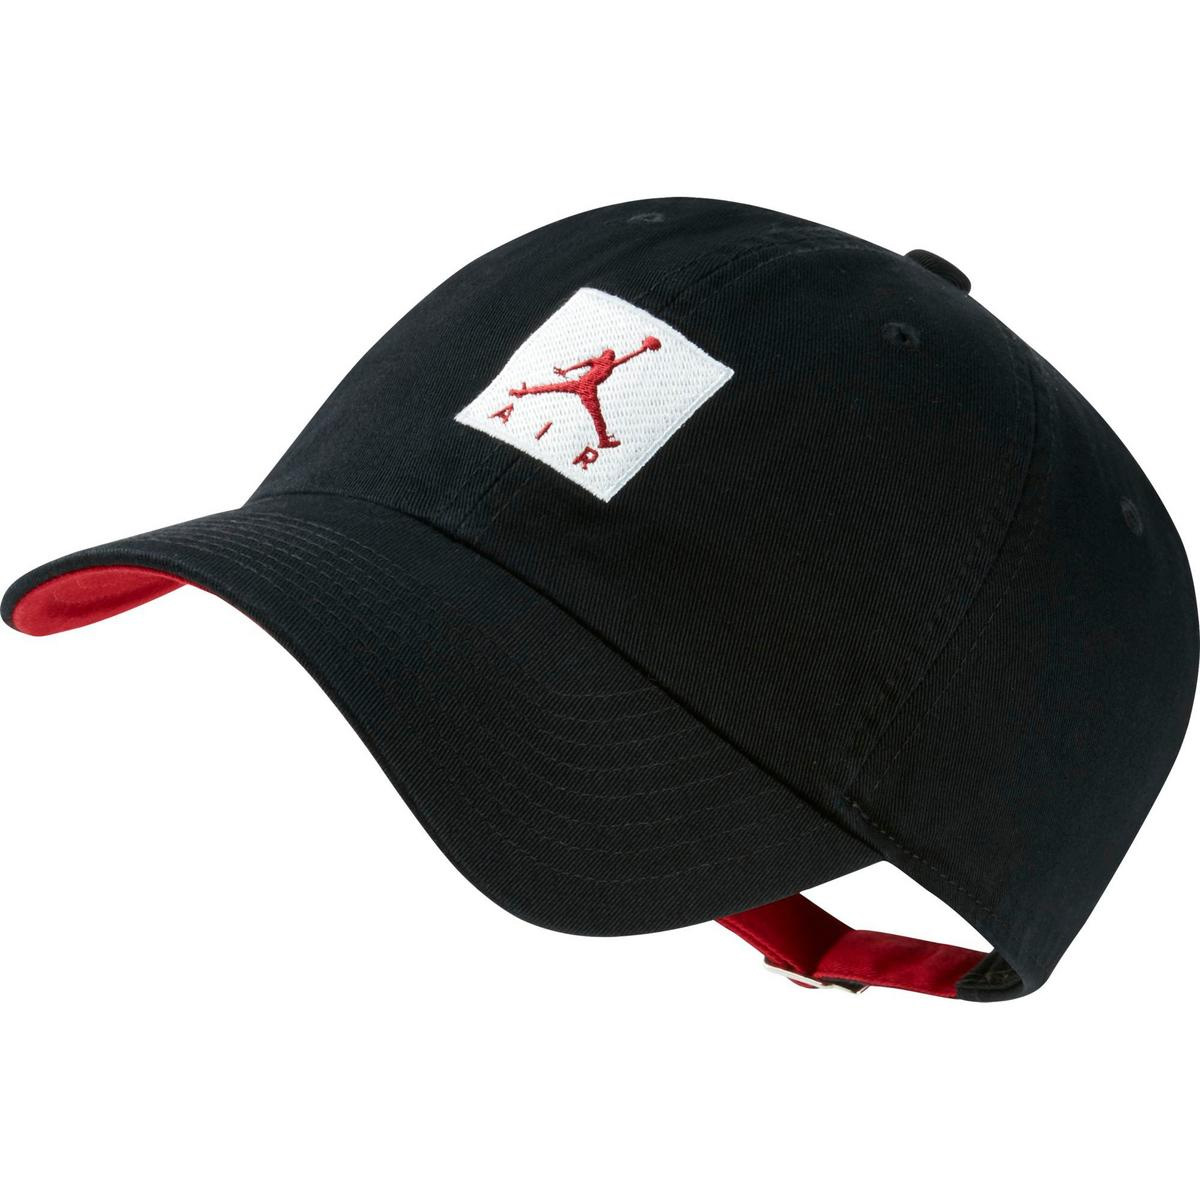 79d0c9d53f6 Details about JORDAN Heritage86 Jumpman Air Hat Cap Nike Air H86 Heritage  86 Flight - NEW